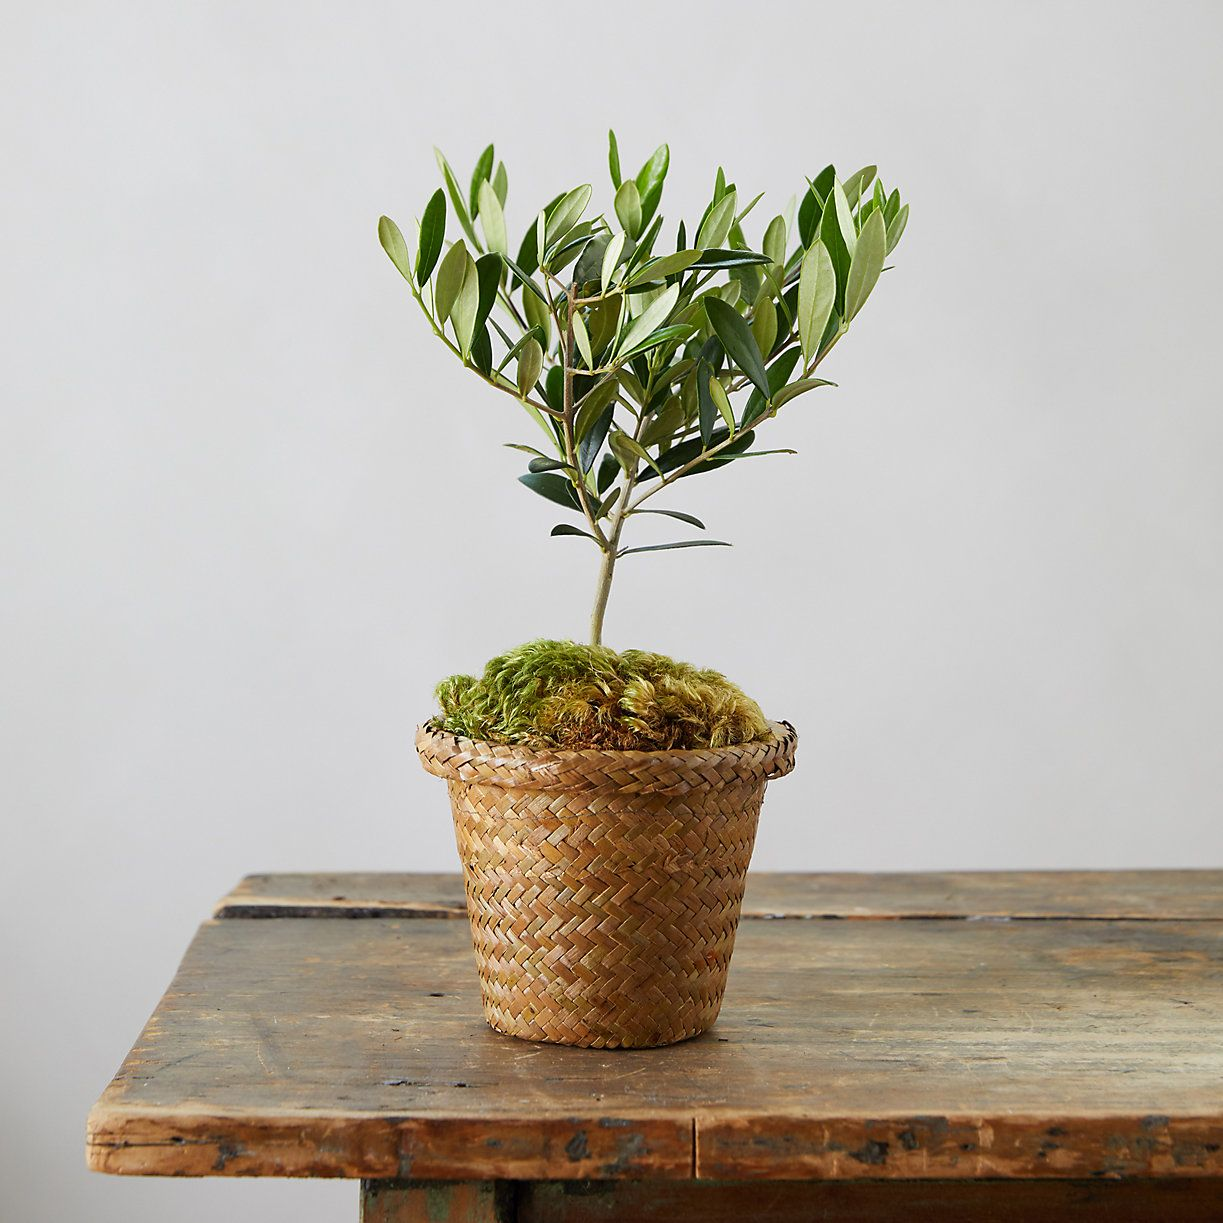 Olive Tree, Woven Grass Pot Woven grass, Potted olive